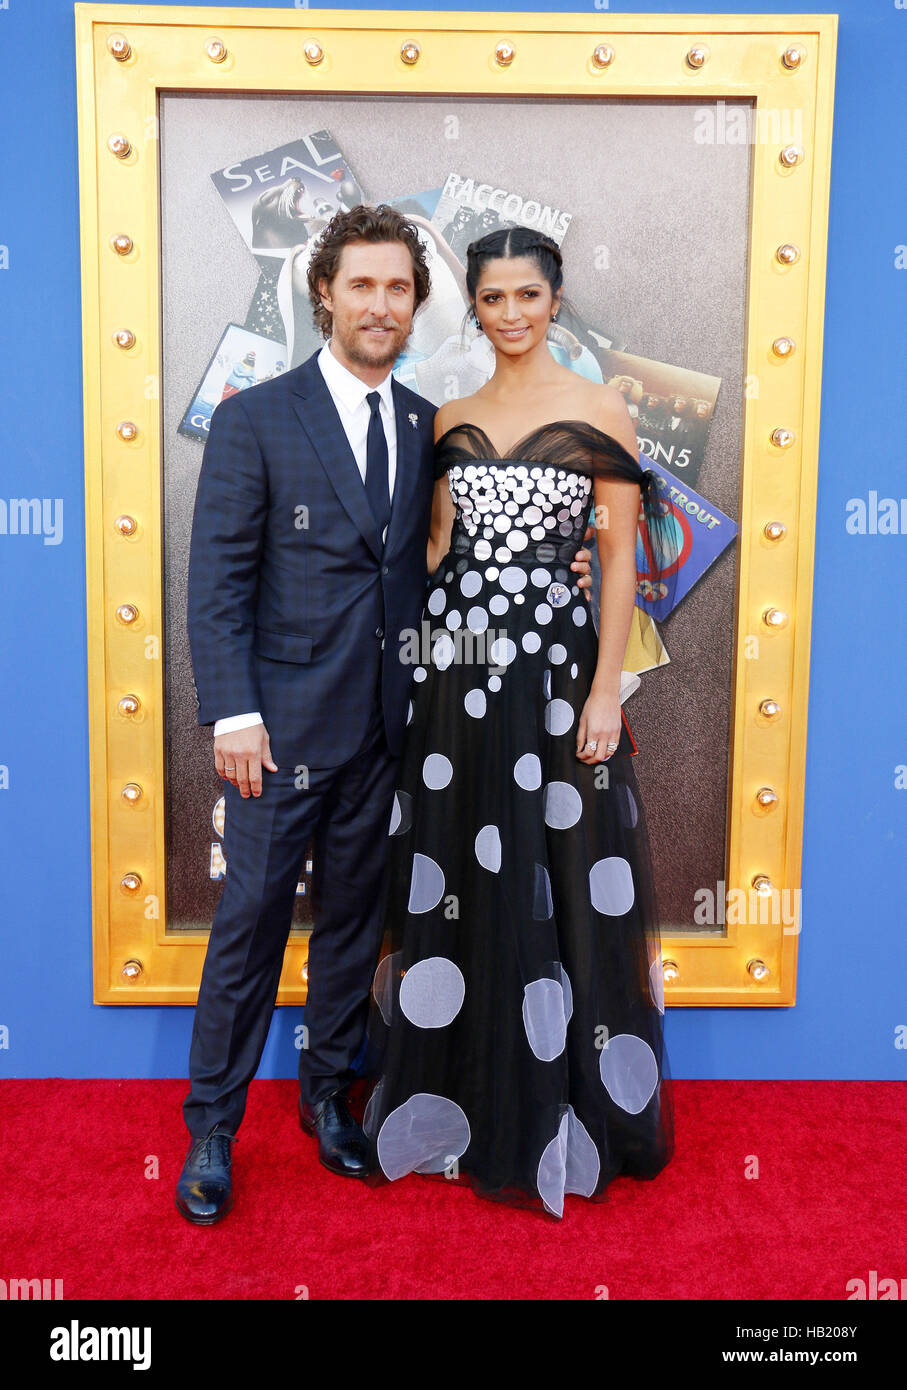 Los Angeles, Californie, USA. 19Th Mar, 2016. Matthew McConaughey et Camila Alves au Los Angeles premiere de 'Sing' Photo Stock